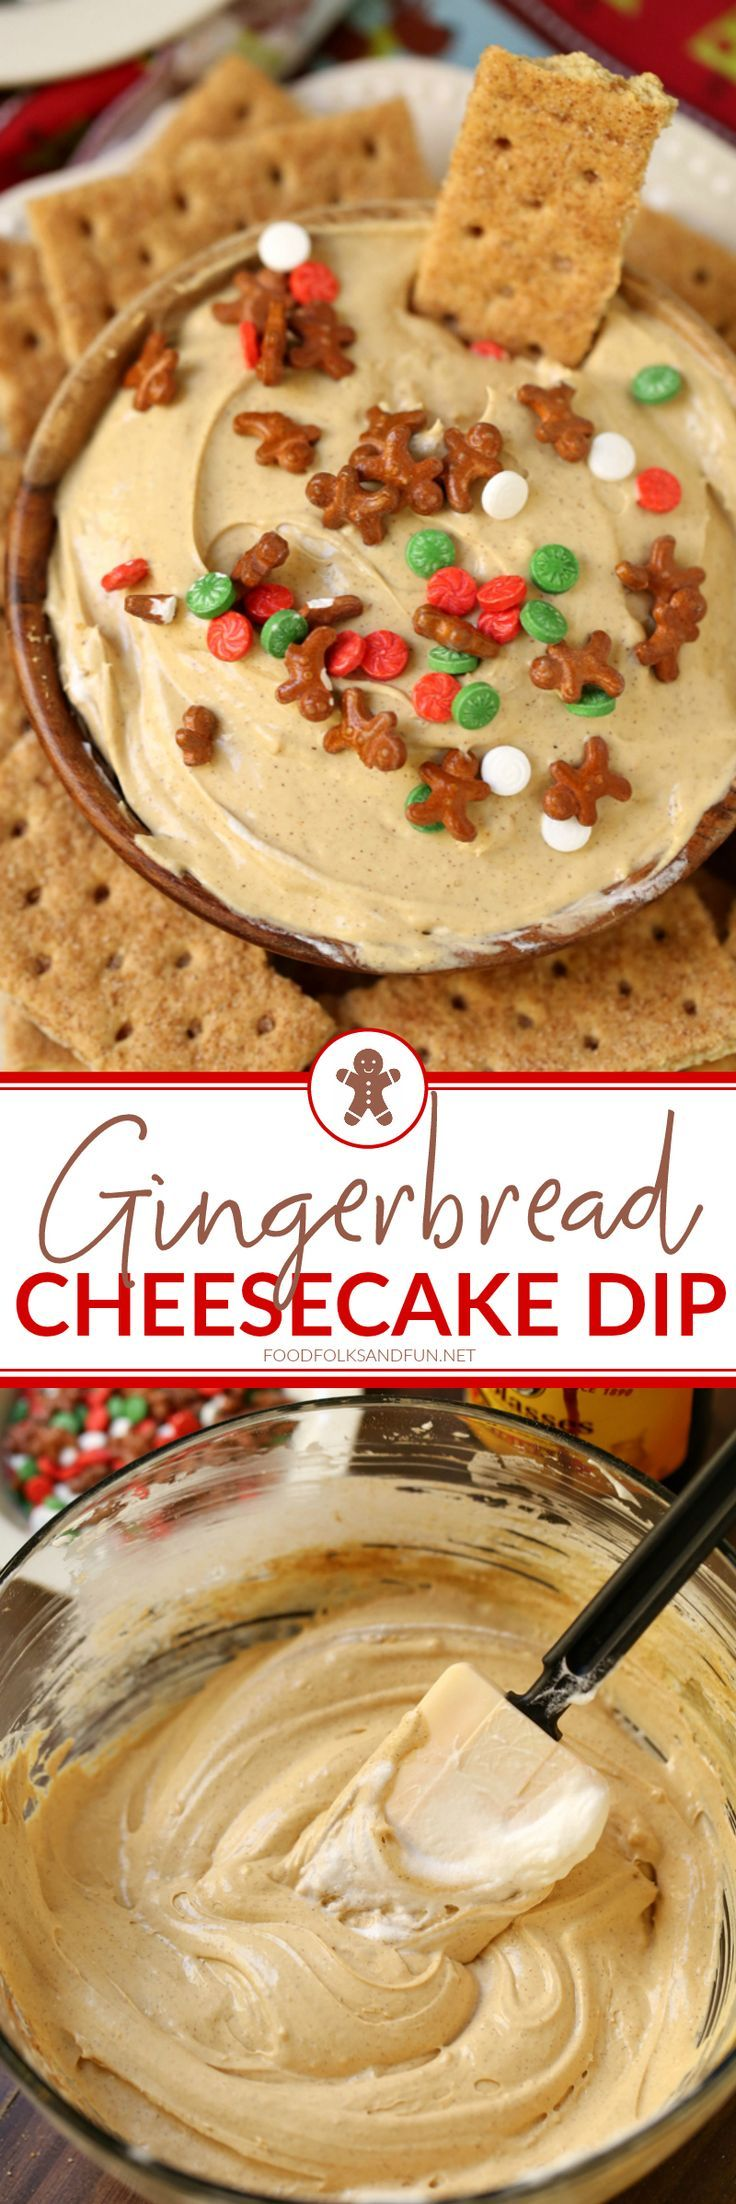 This Gingerbread Cheesecake Dip is always a party favorite for the holidays. Make it for your next holiday get together and I guarantee you'll be the most popular person in the room!